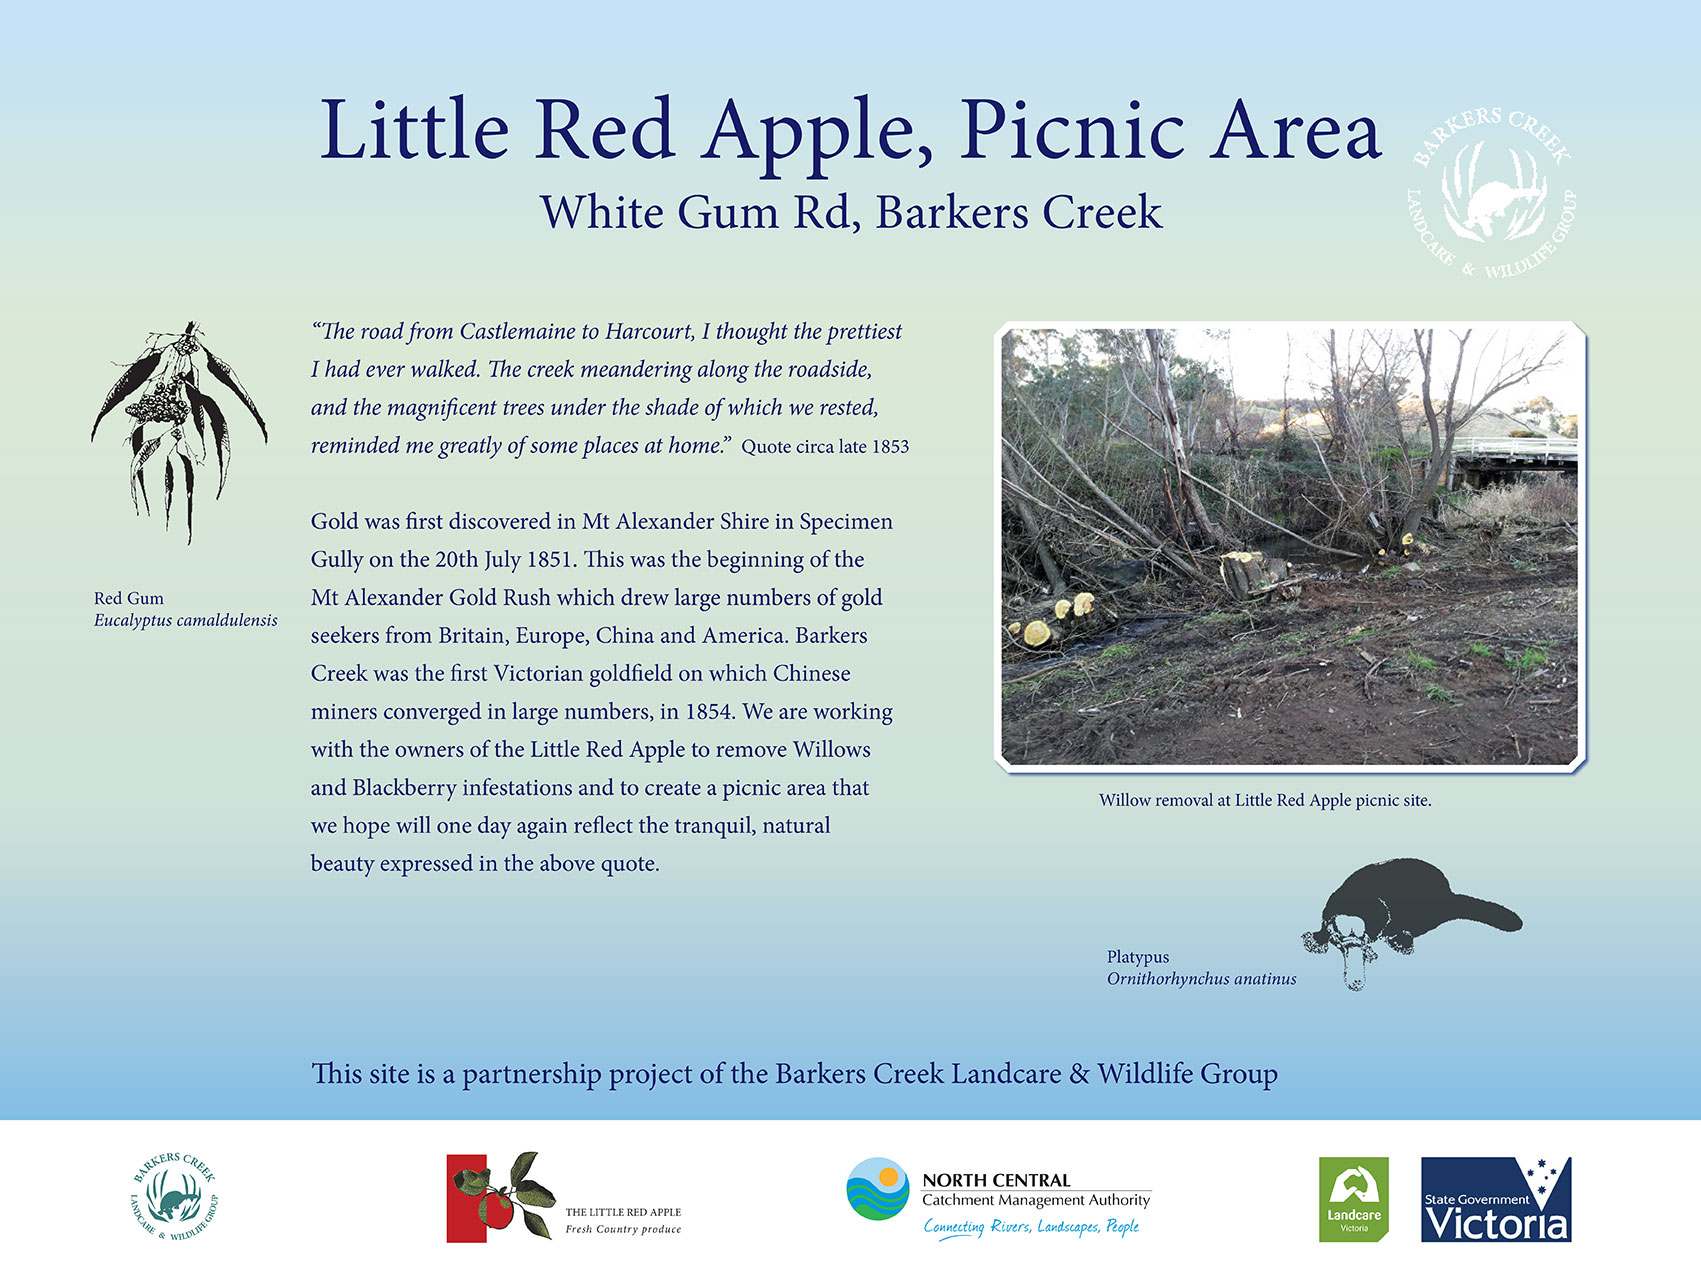 Signage at Little Red Apple Picnic Area